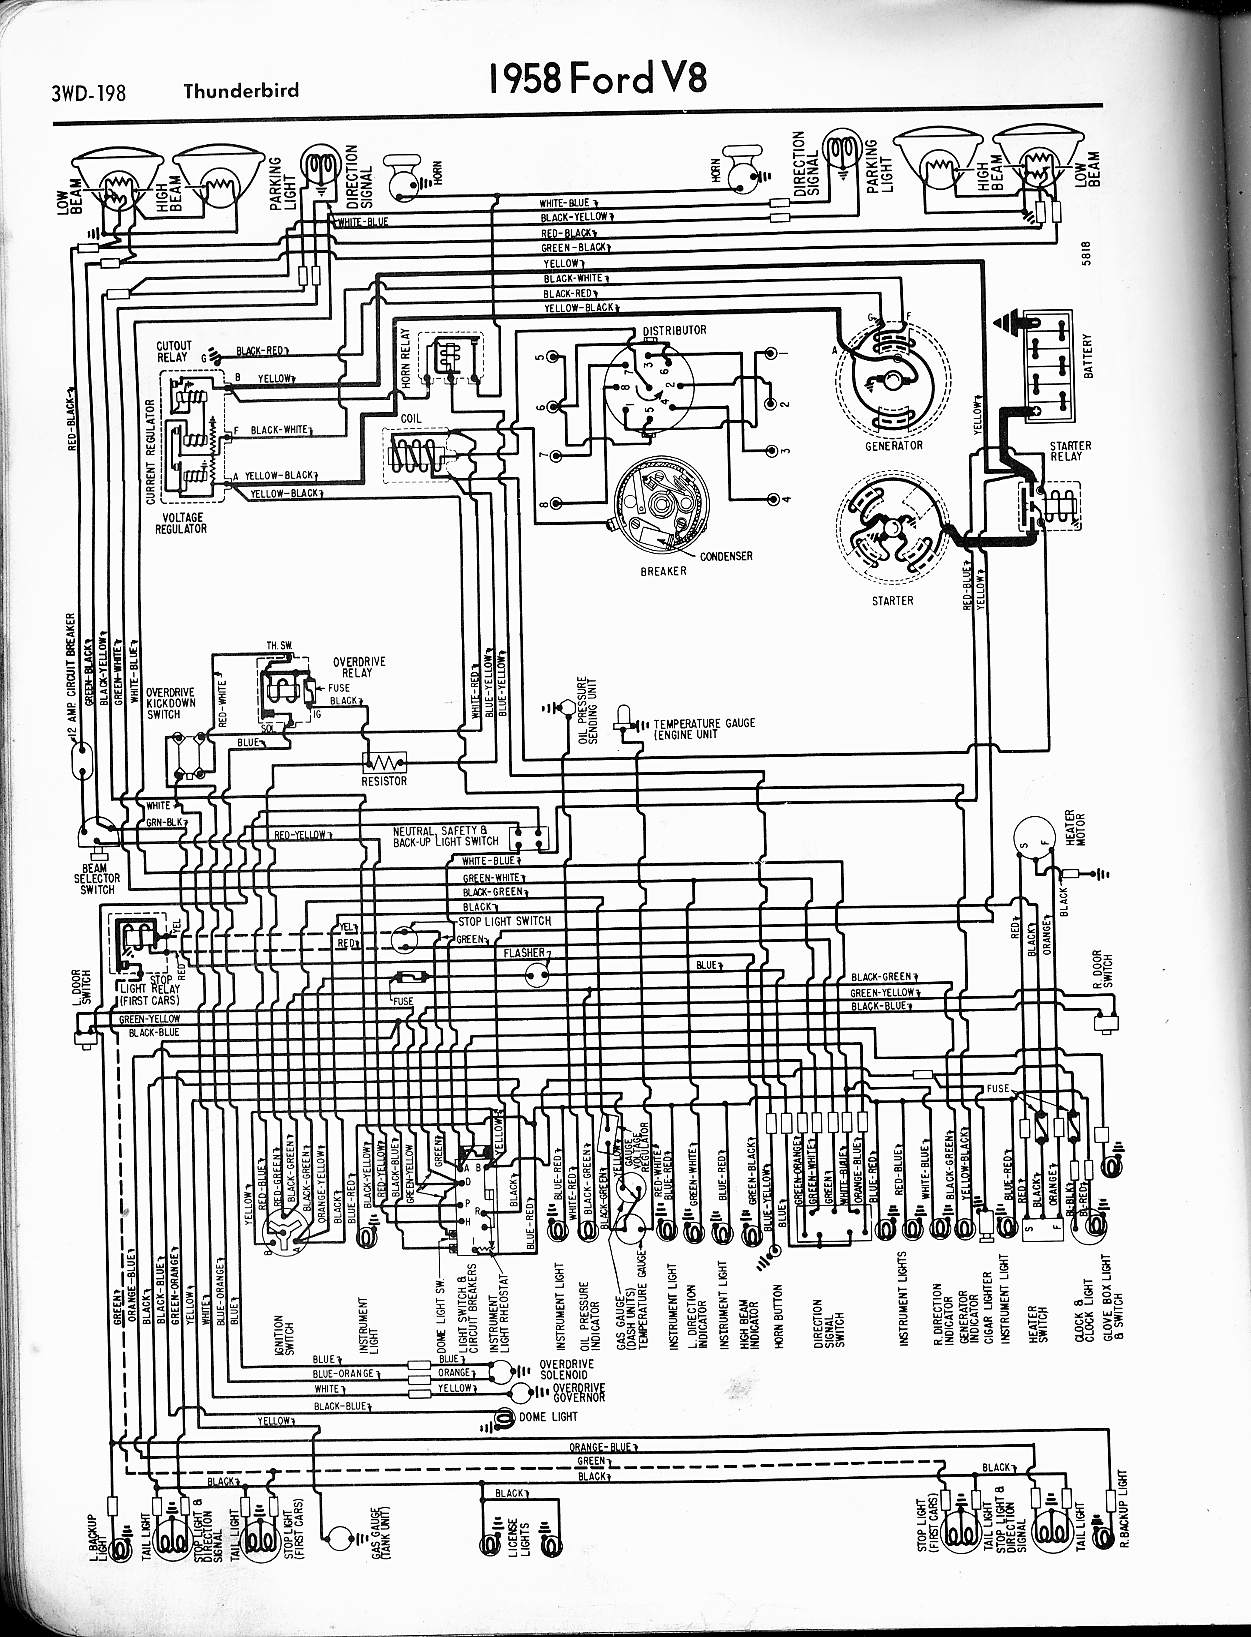 Wiring Diagram For 1995 Ford Thunderbird Libraries Premium Sound 1965 Third Level57 65 Diagrams 1956 Cadillac